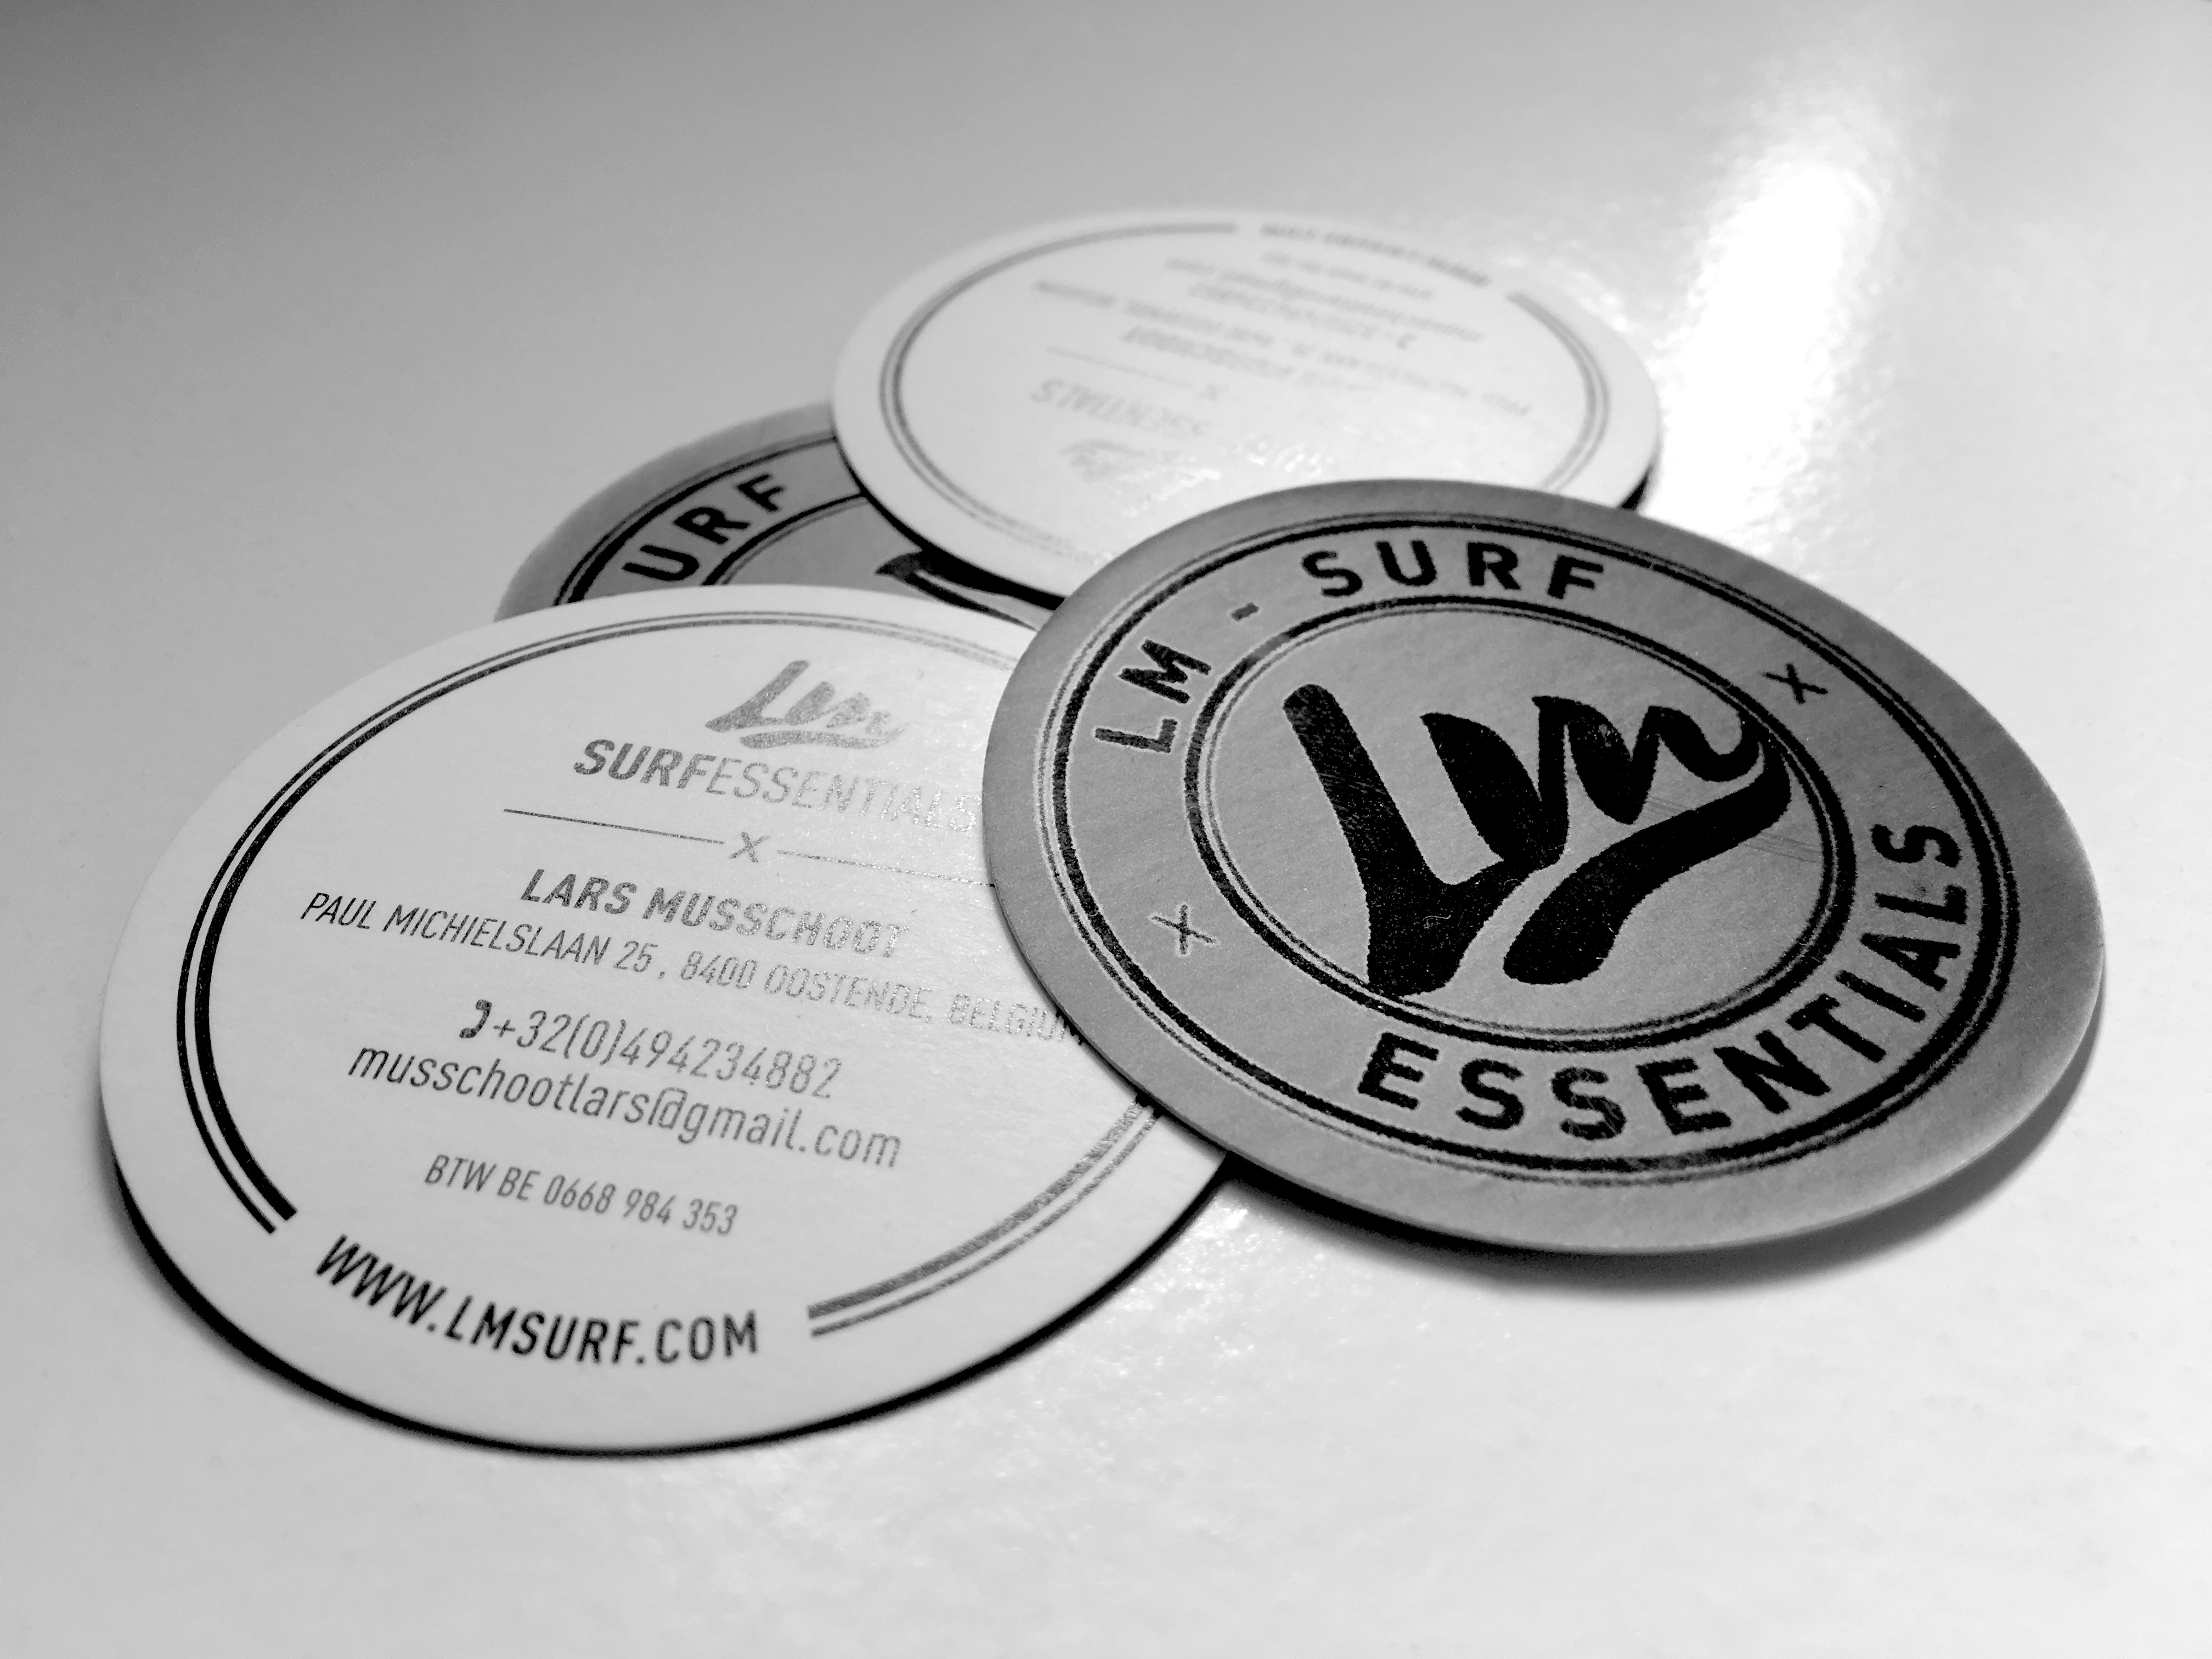 LM - Surf Essentials